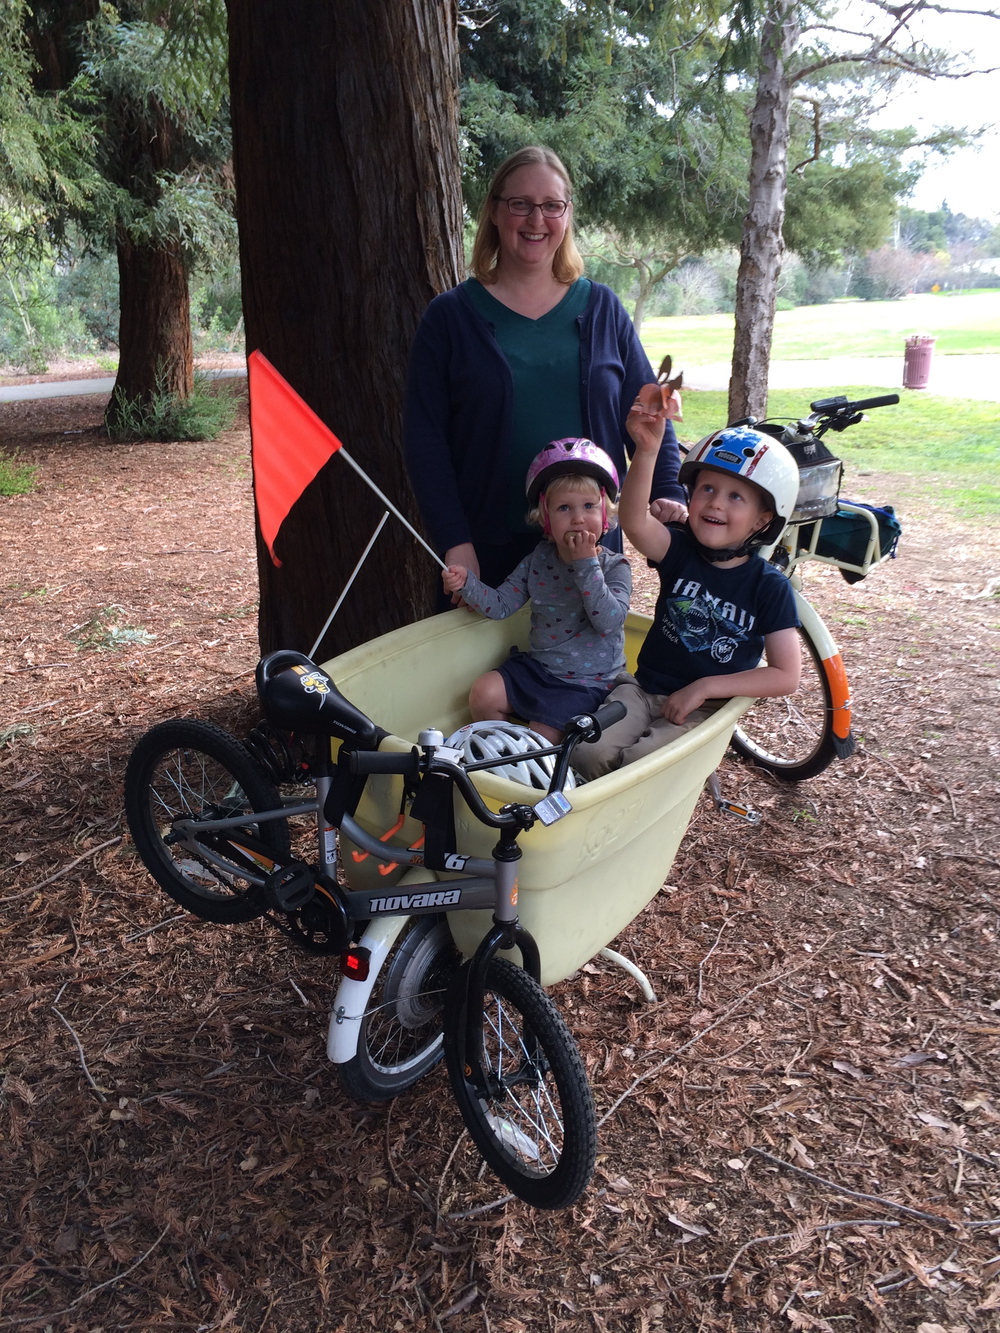 Jenn, Becky, Danny and their Madsen bike